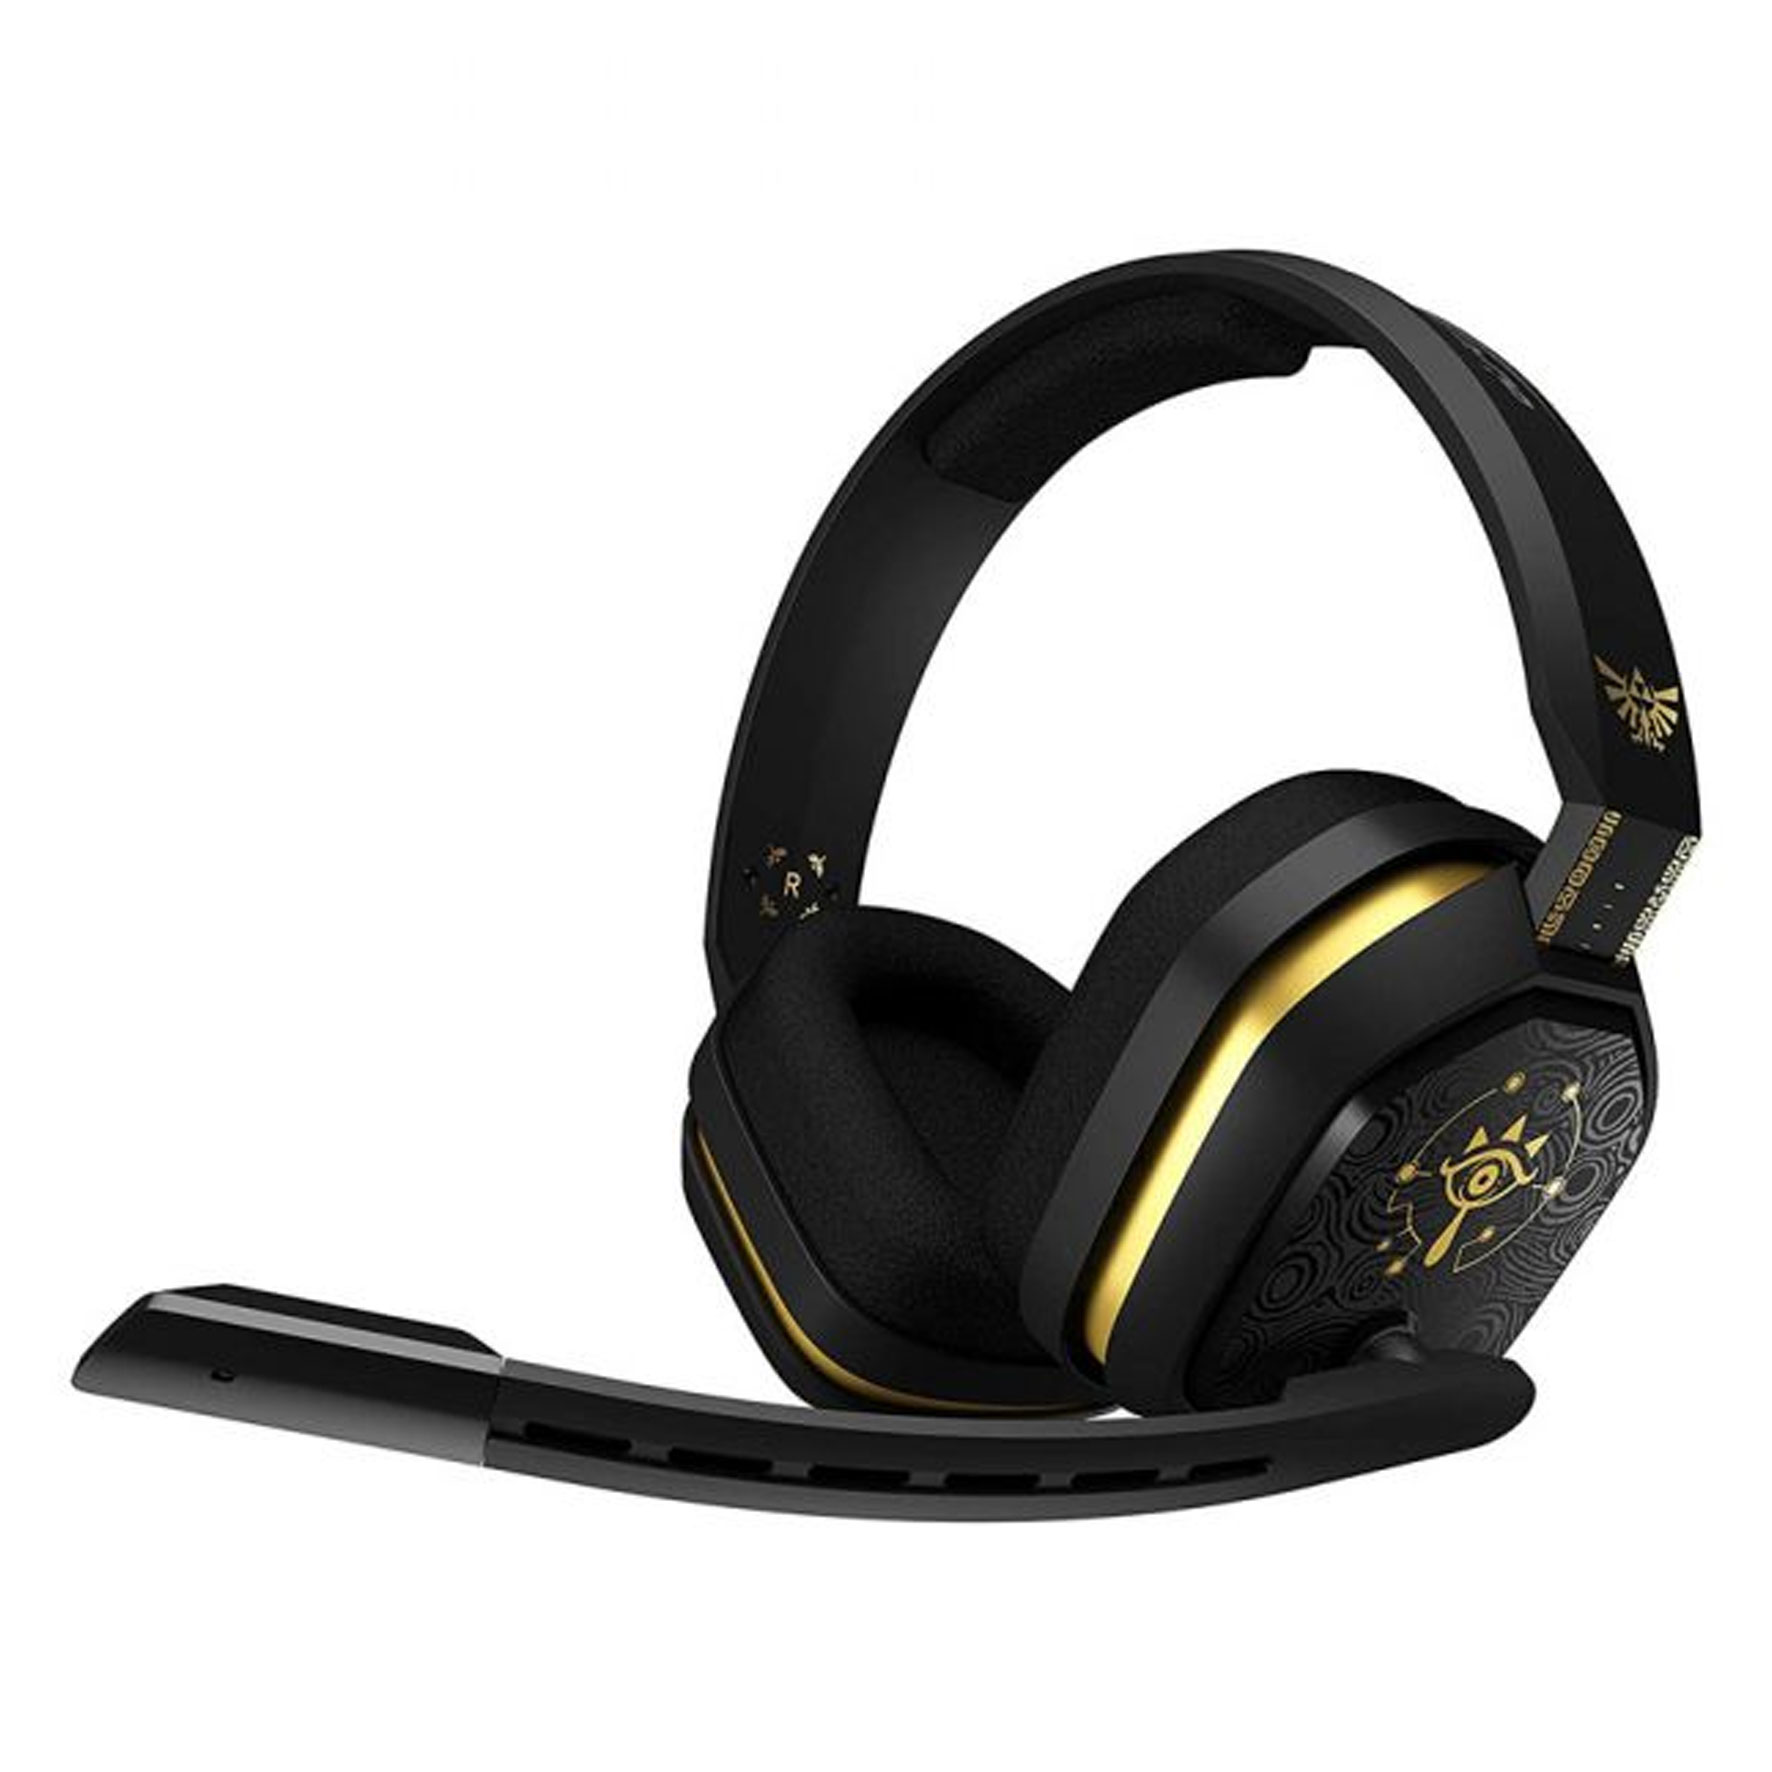 AURICULARES ASTRO A10 GAMER EDICION THE LEGEND OF ZELDA